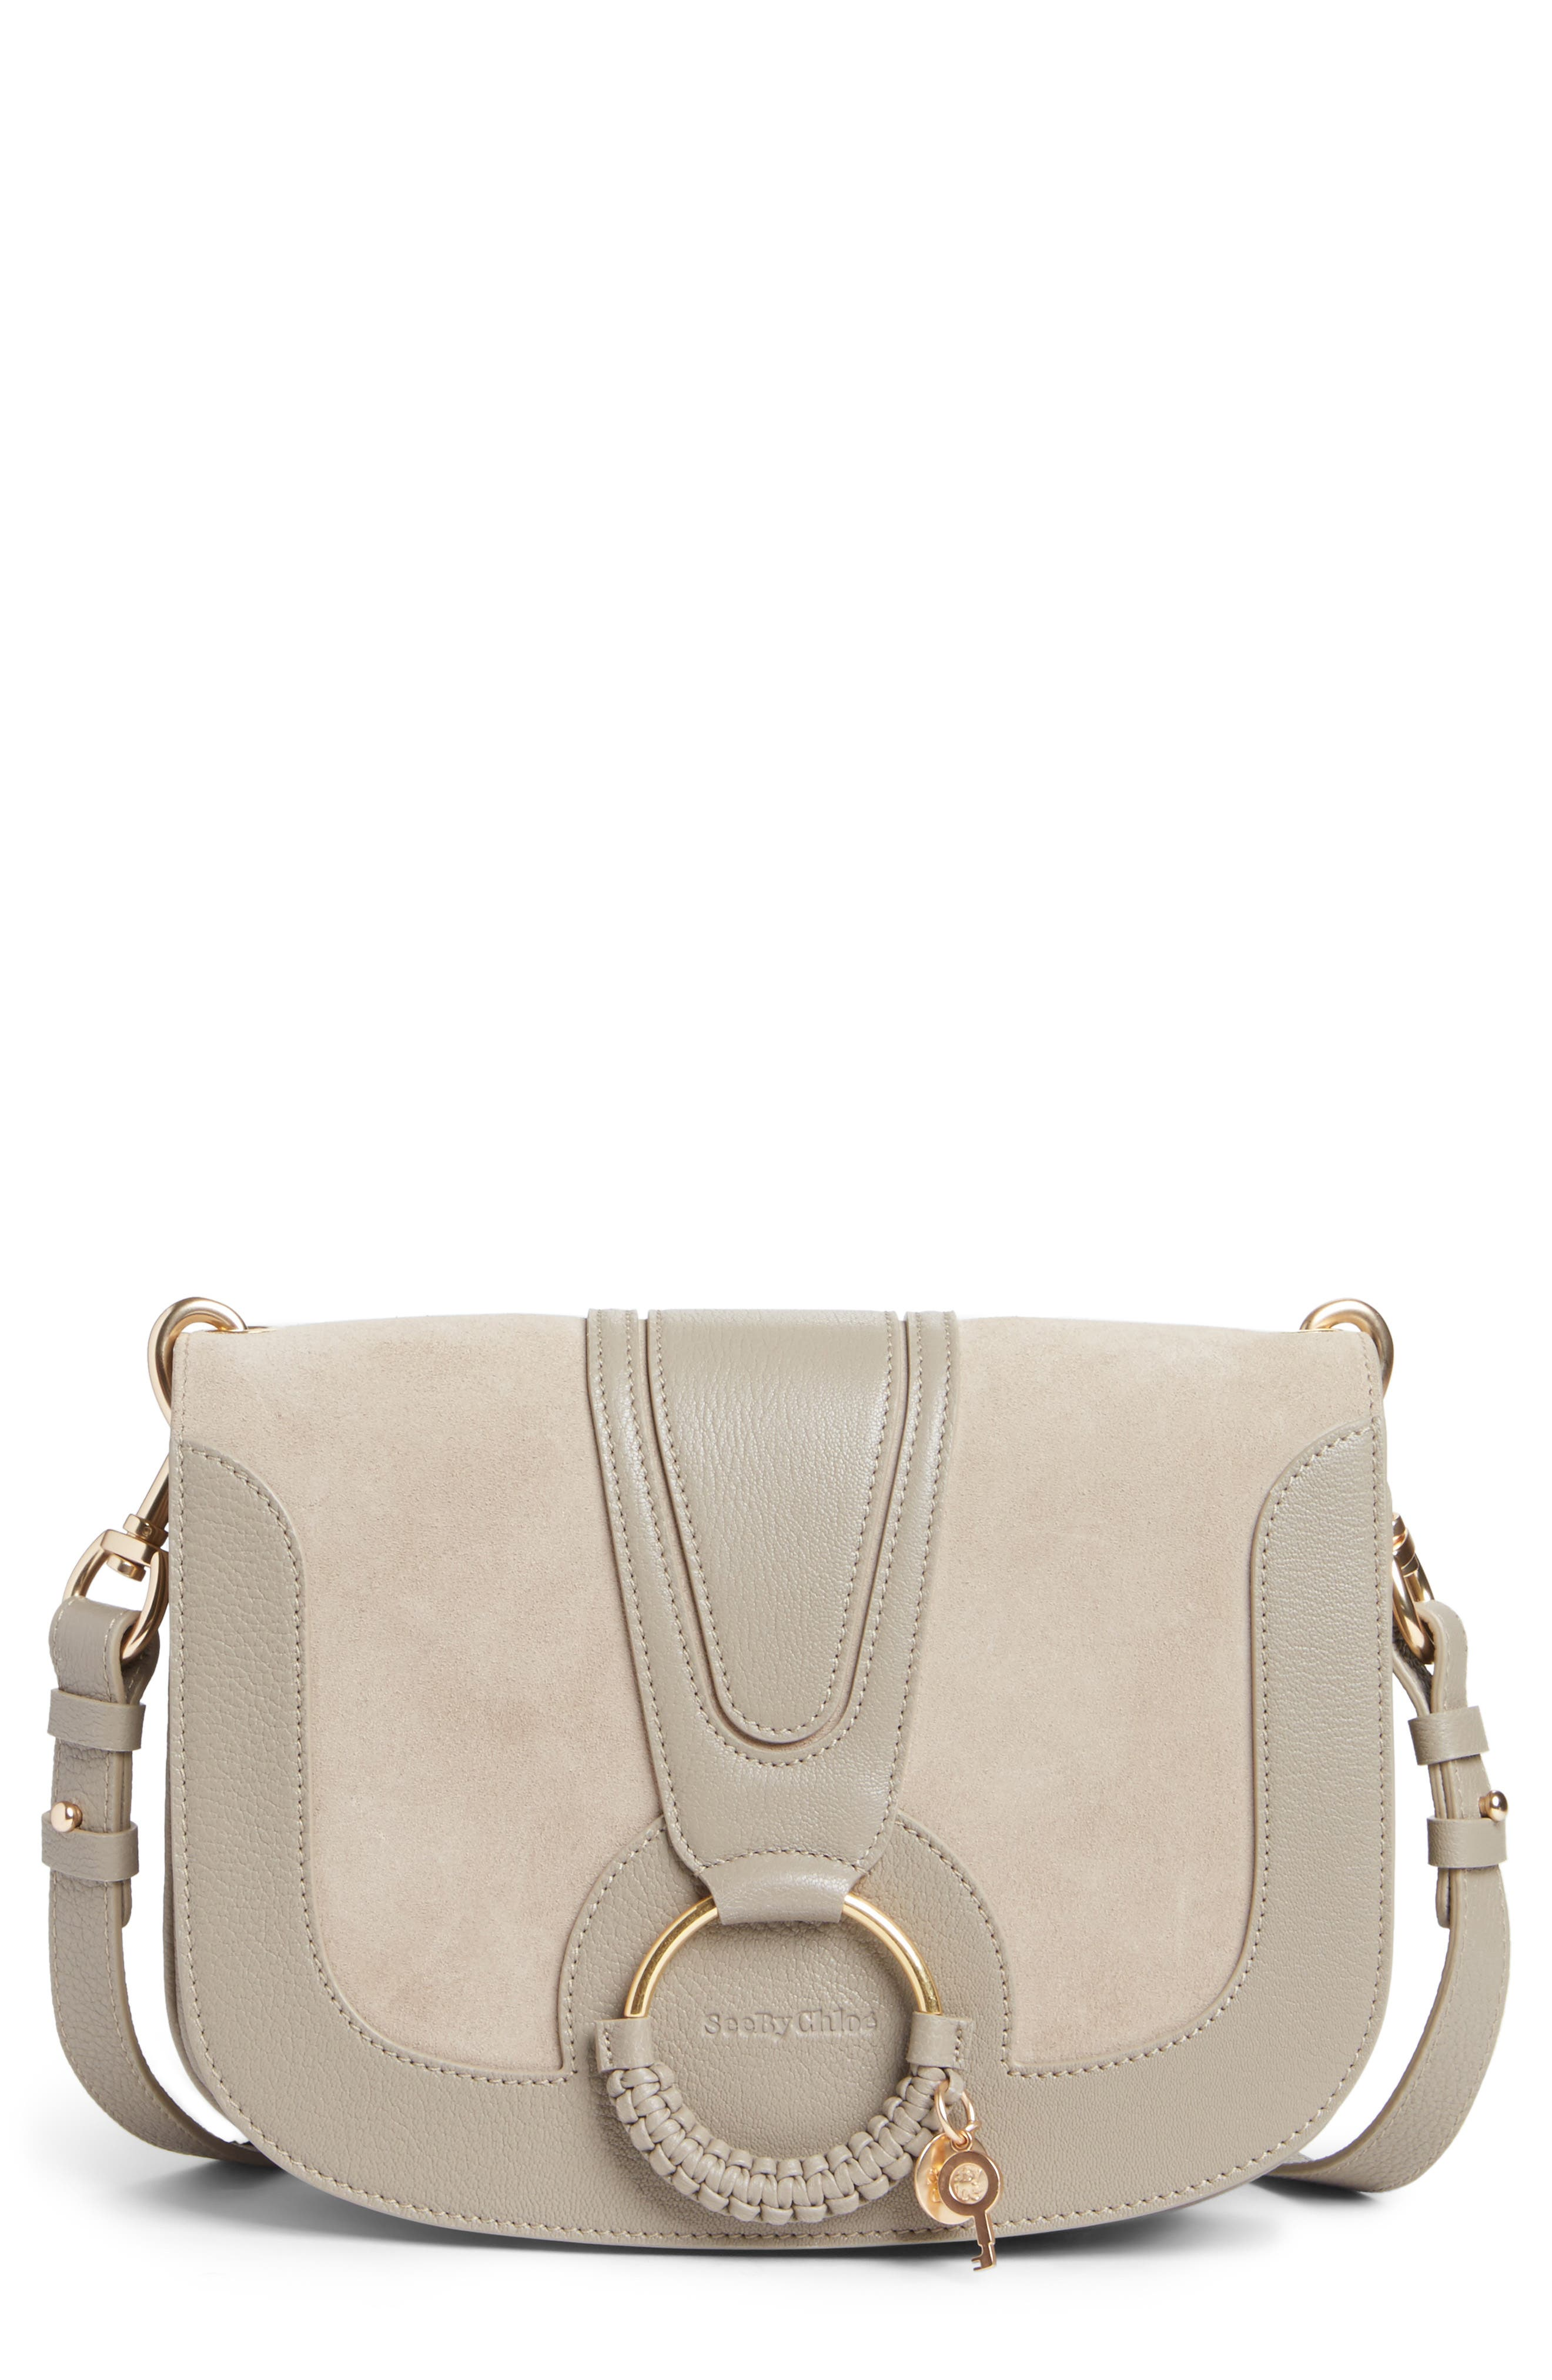 See by Chloé Medium Hana Leather Satchel